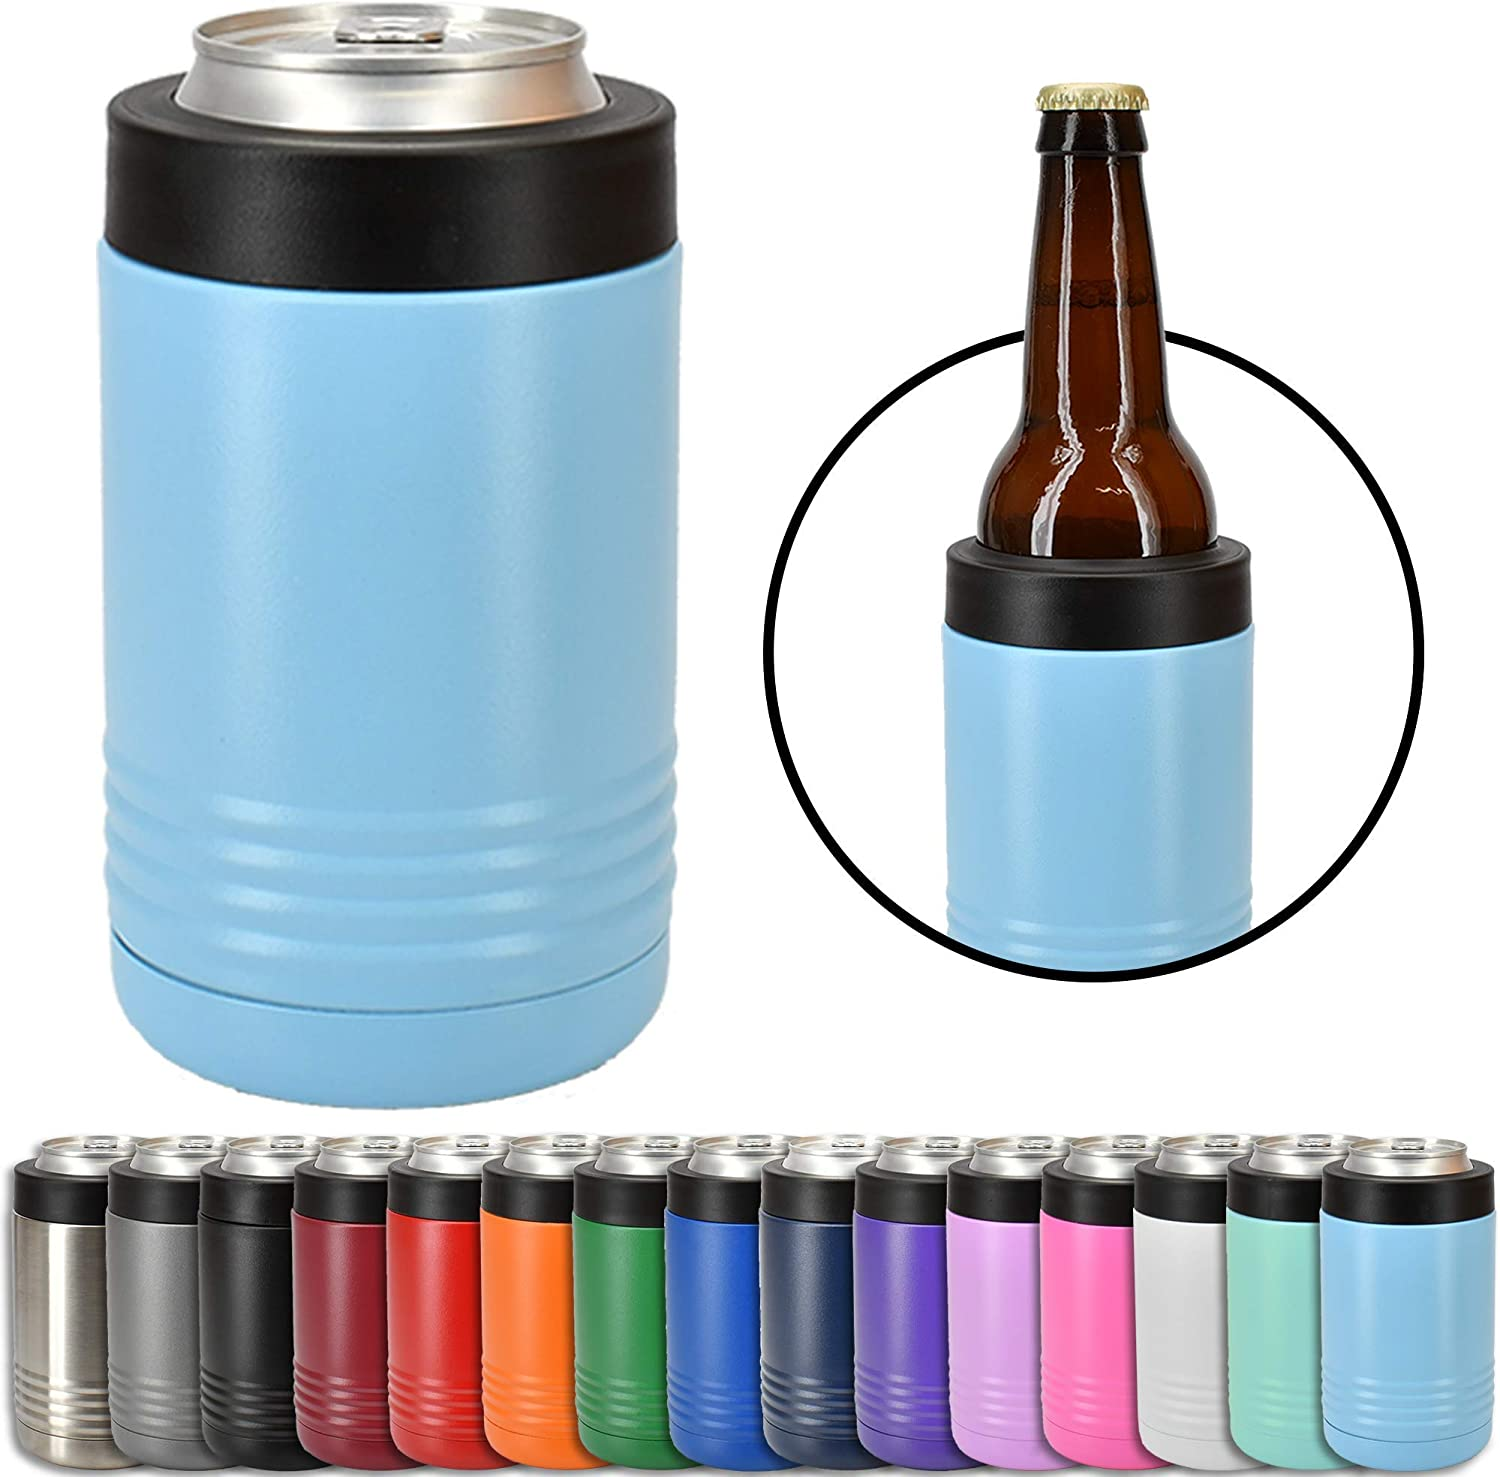 Clear Water Home Goods - 12 oz Stainless Steel Double Wall Vacuum Insulated Can or Bottle Cooler Keeps Beverage Cold for Hours - Powder Coated Light Blue